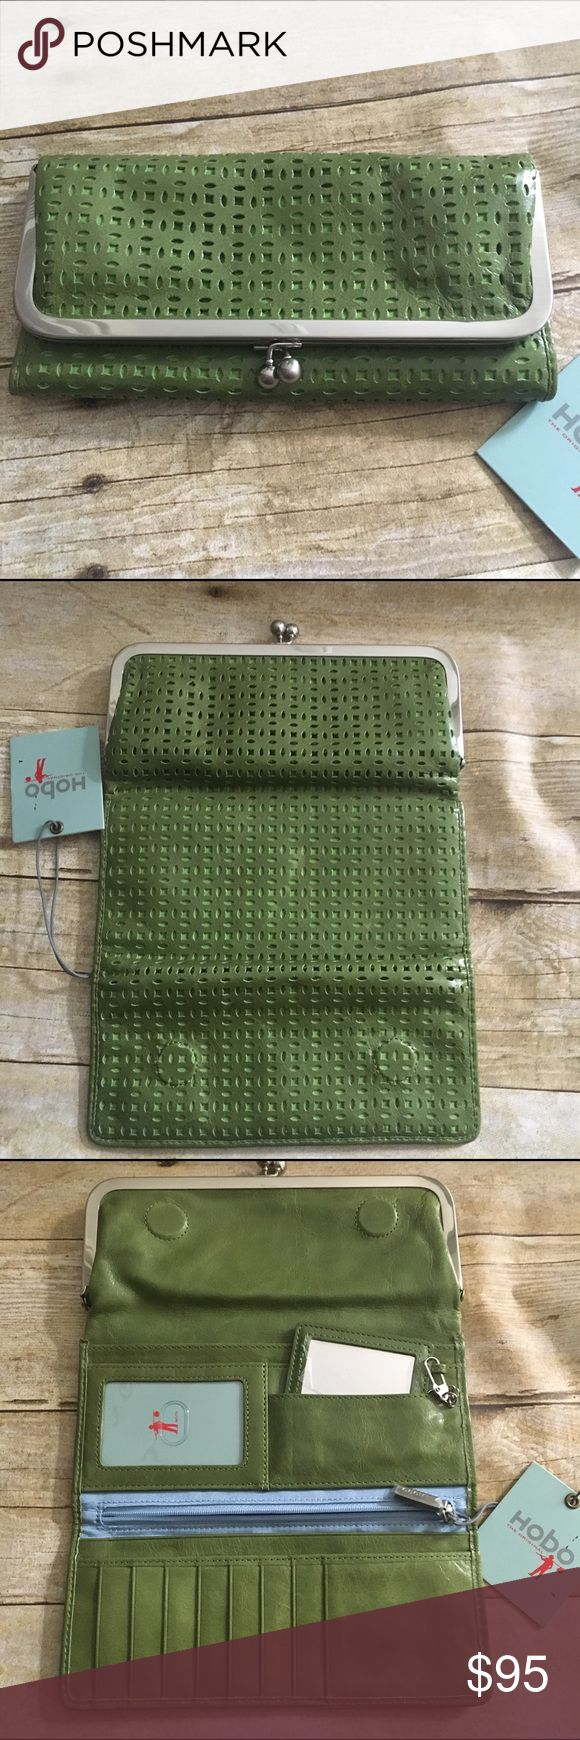 NWT Hobo green leather clutch wallet NWT Hobo green leather clutch wallet. Perforated green leather. NWT. Never used. You can slip your phone in the change section. Nonsmoking home. HOBO Bags Clutches & Wristlets